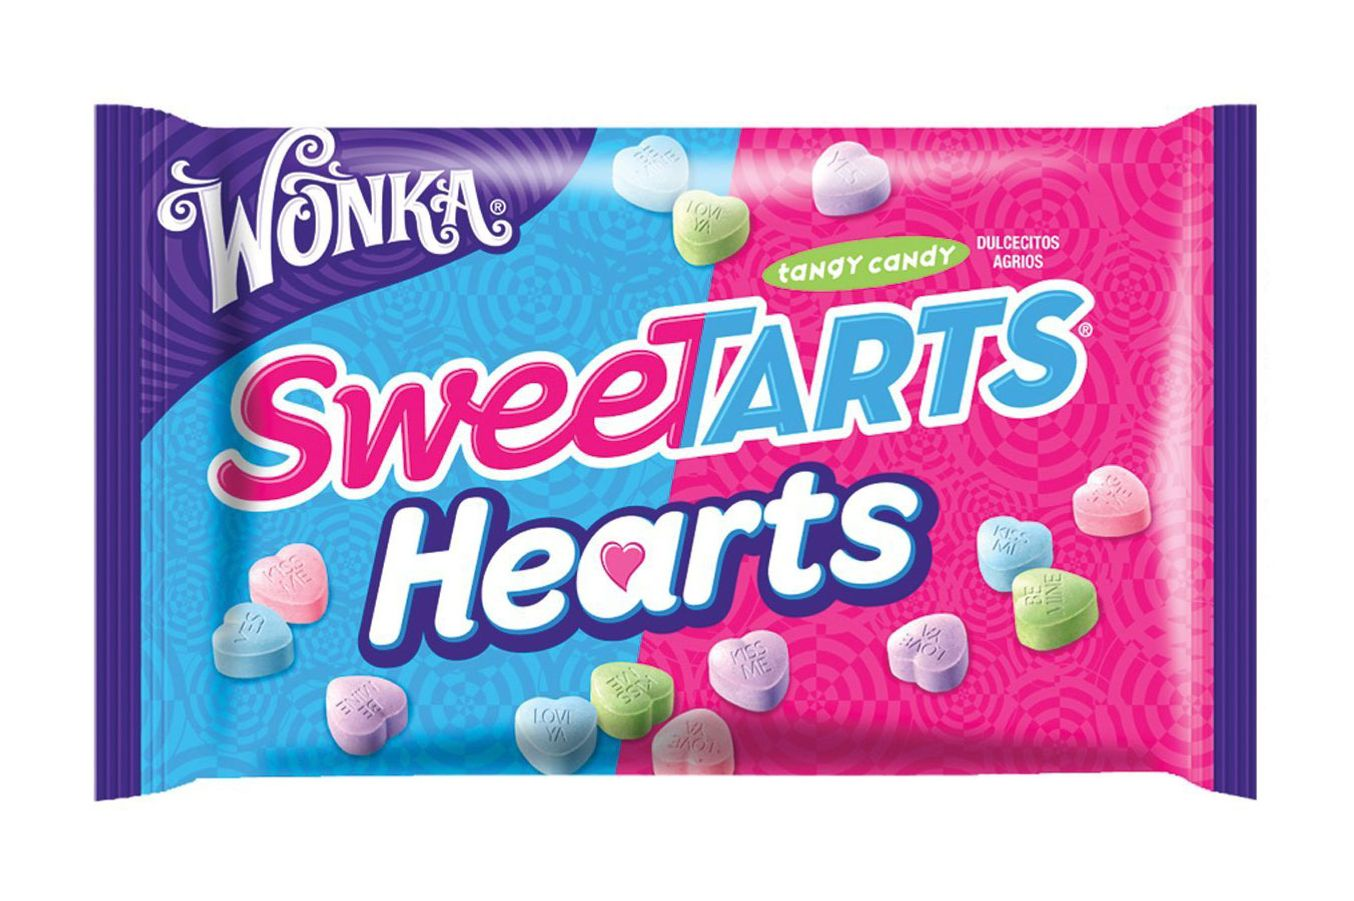 Wonka SweeTarts Valentine's Hearts, 14-Ounce Bags (Pack of 6)